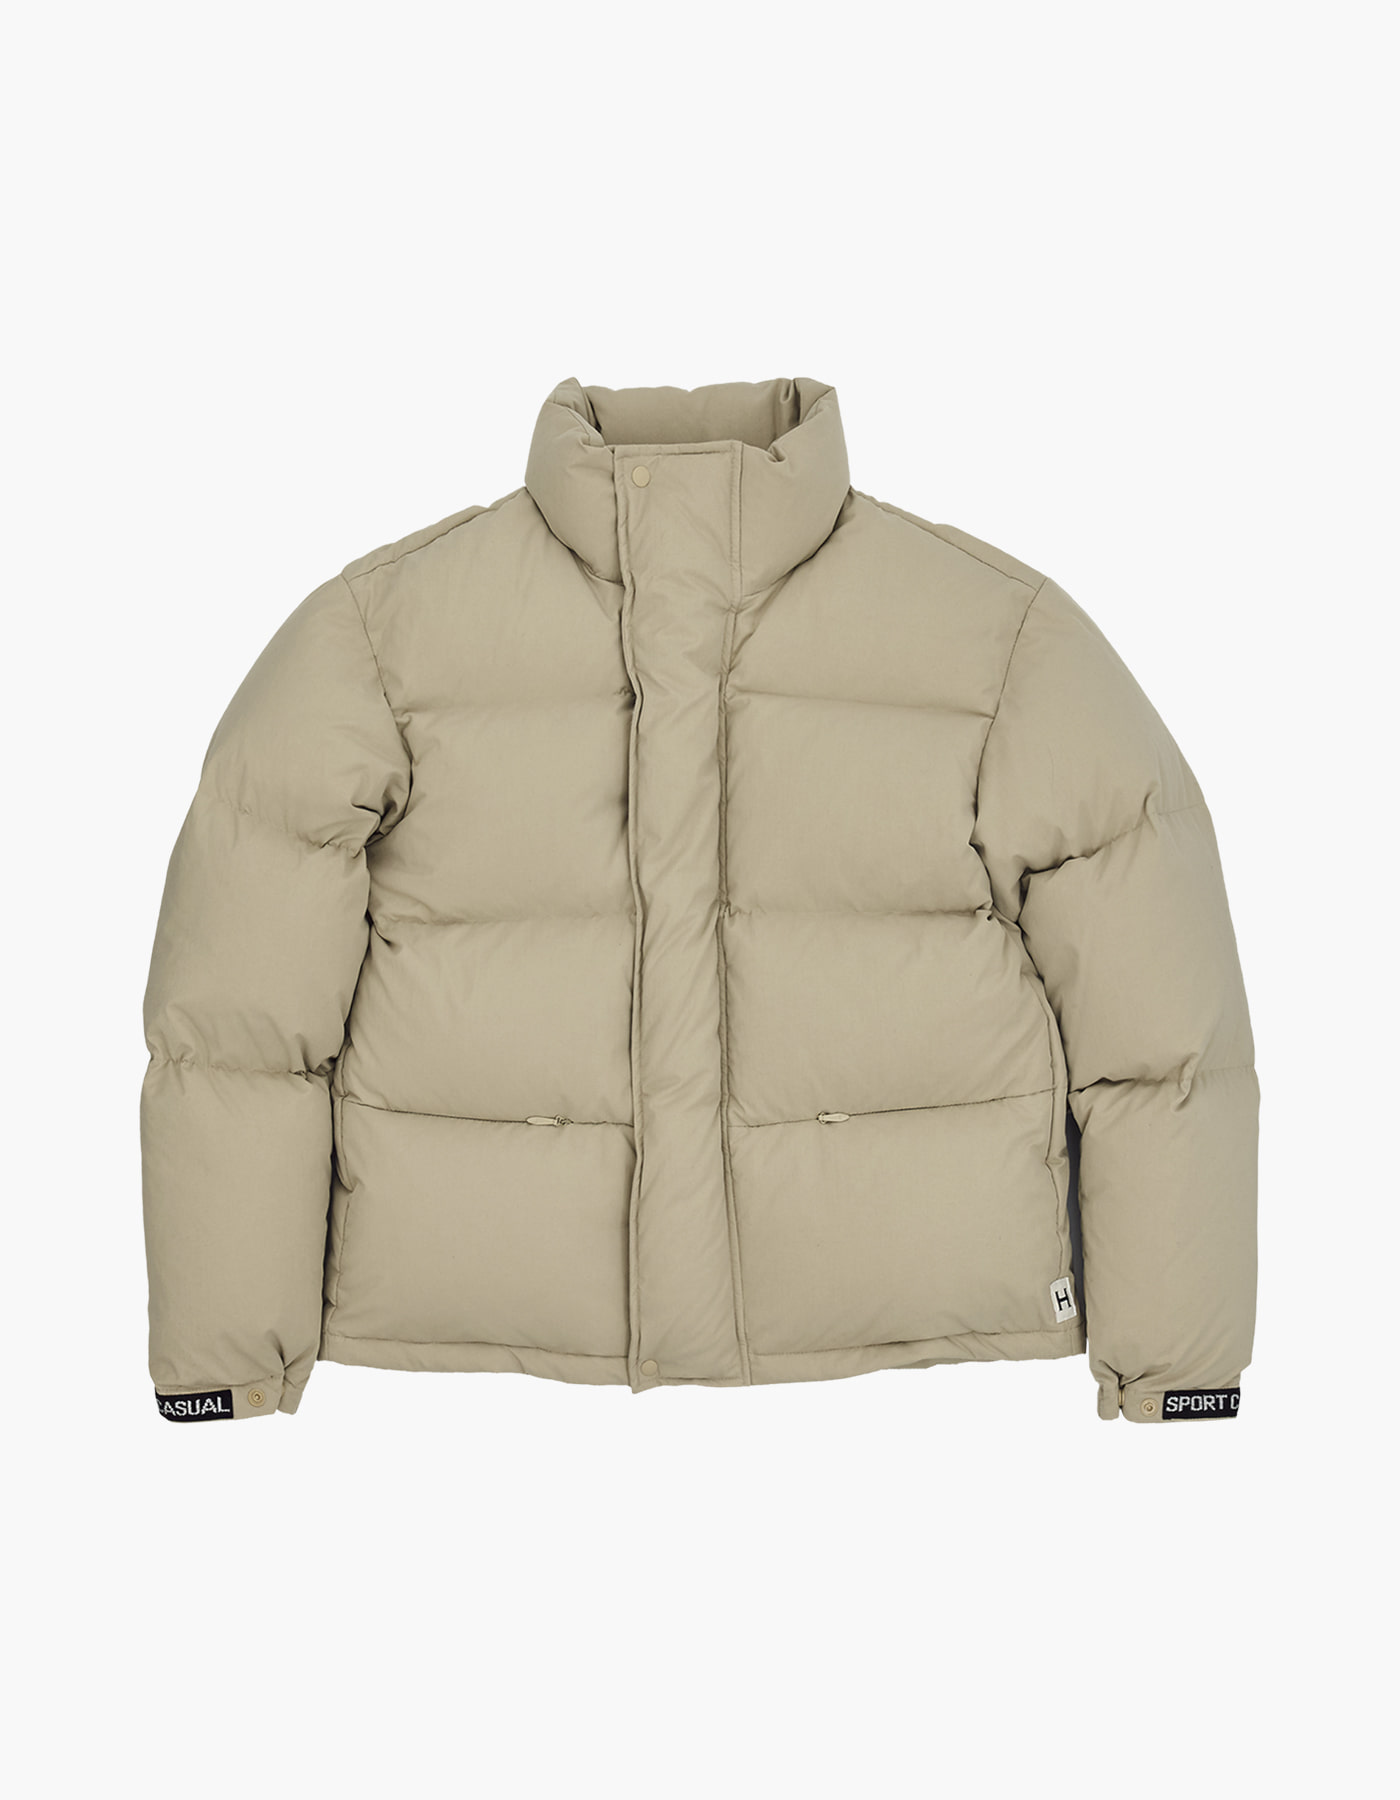 700 PUFFY GOOSE DOWN JACKET / BEIGE